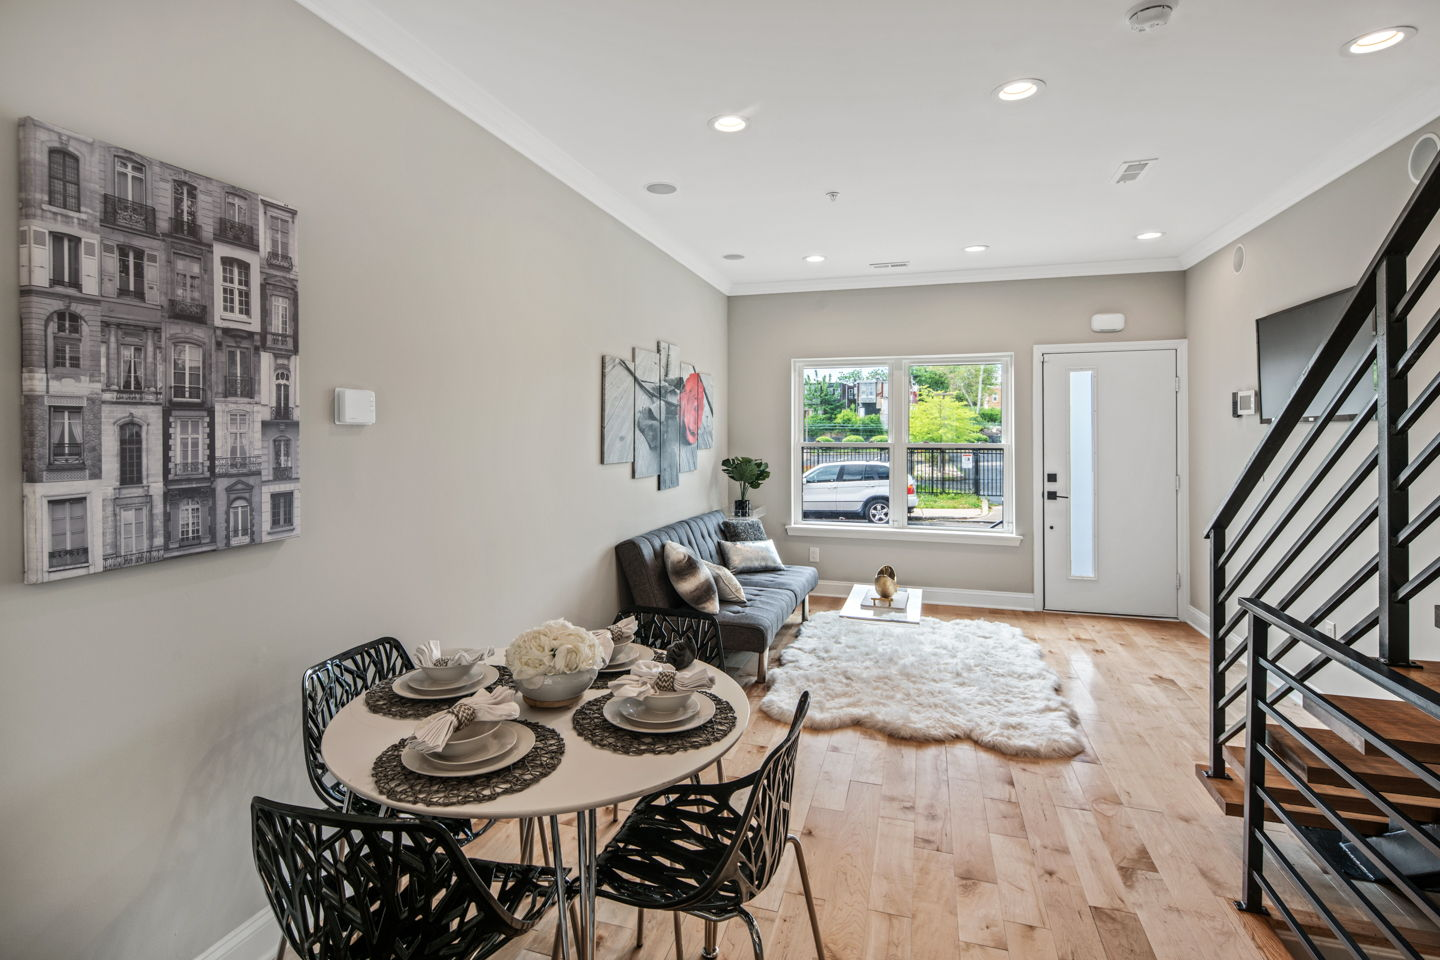 New Trends in Home Staging